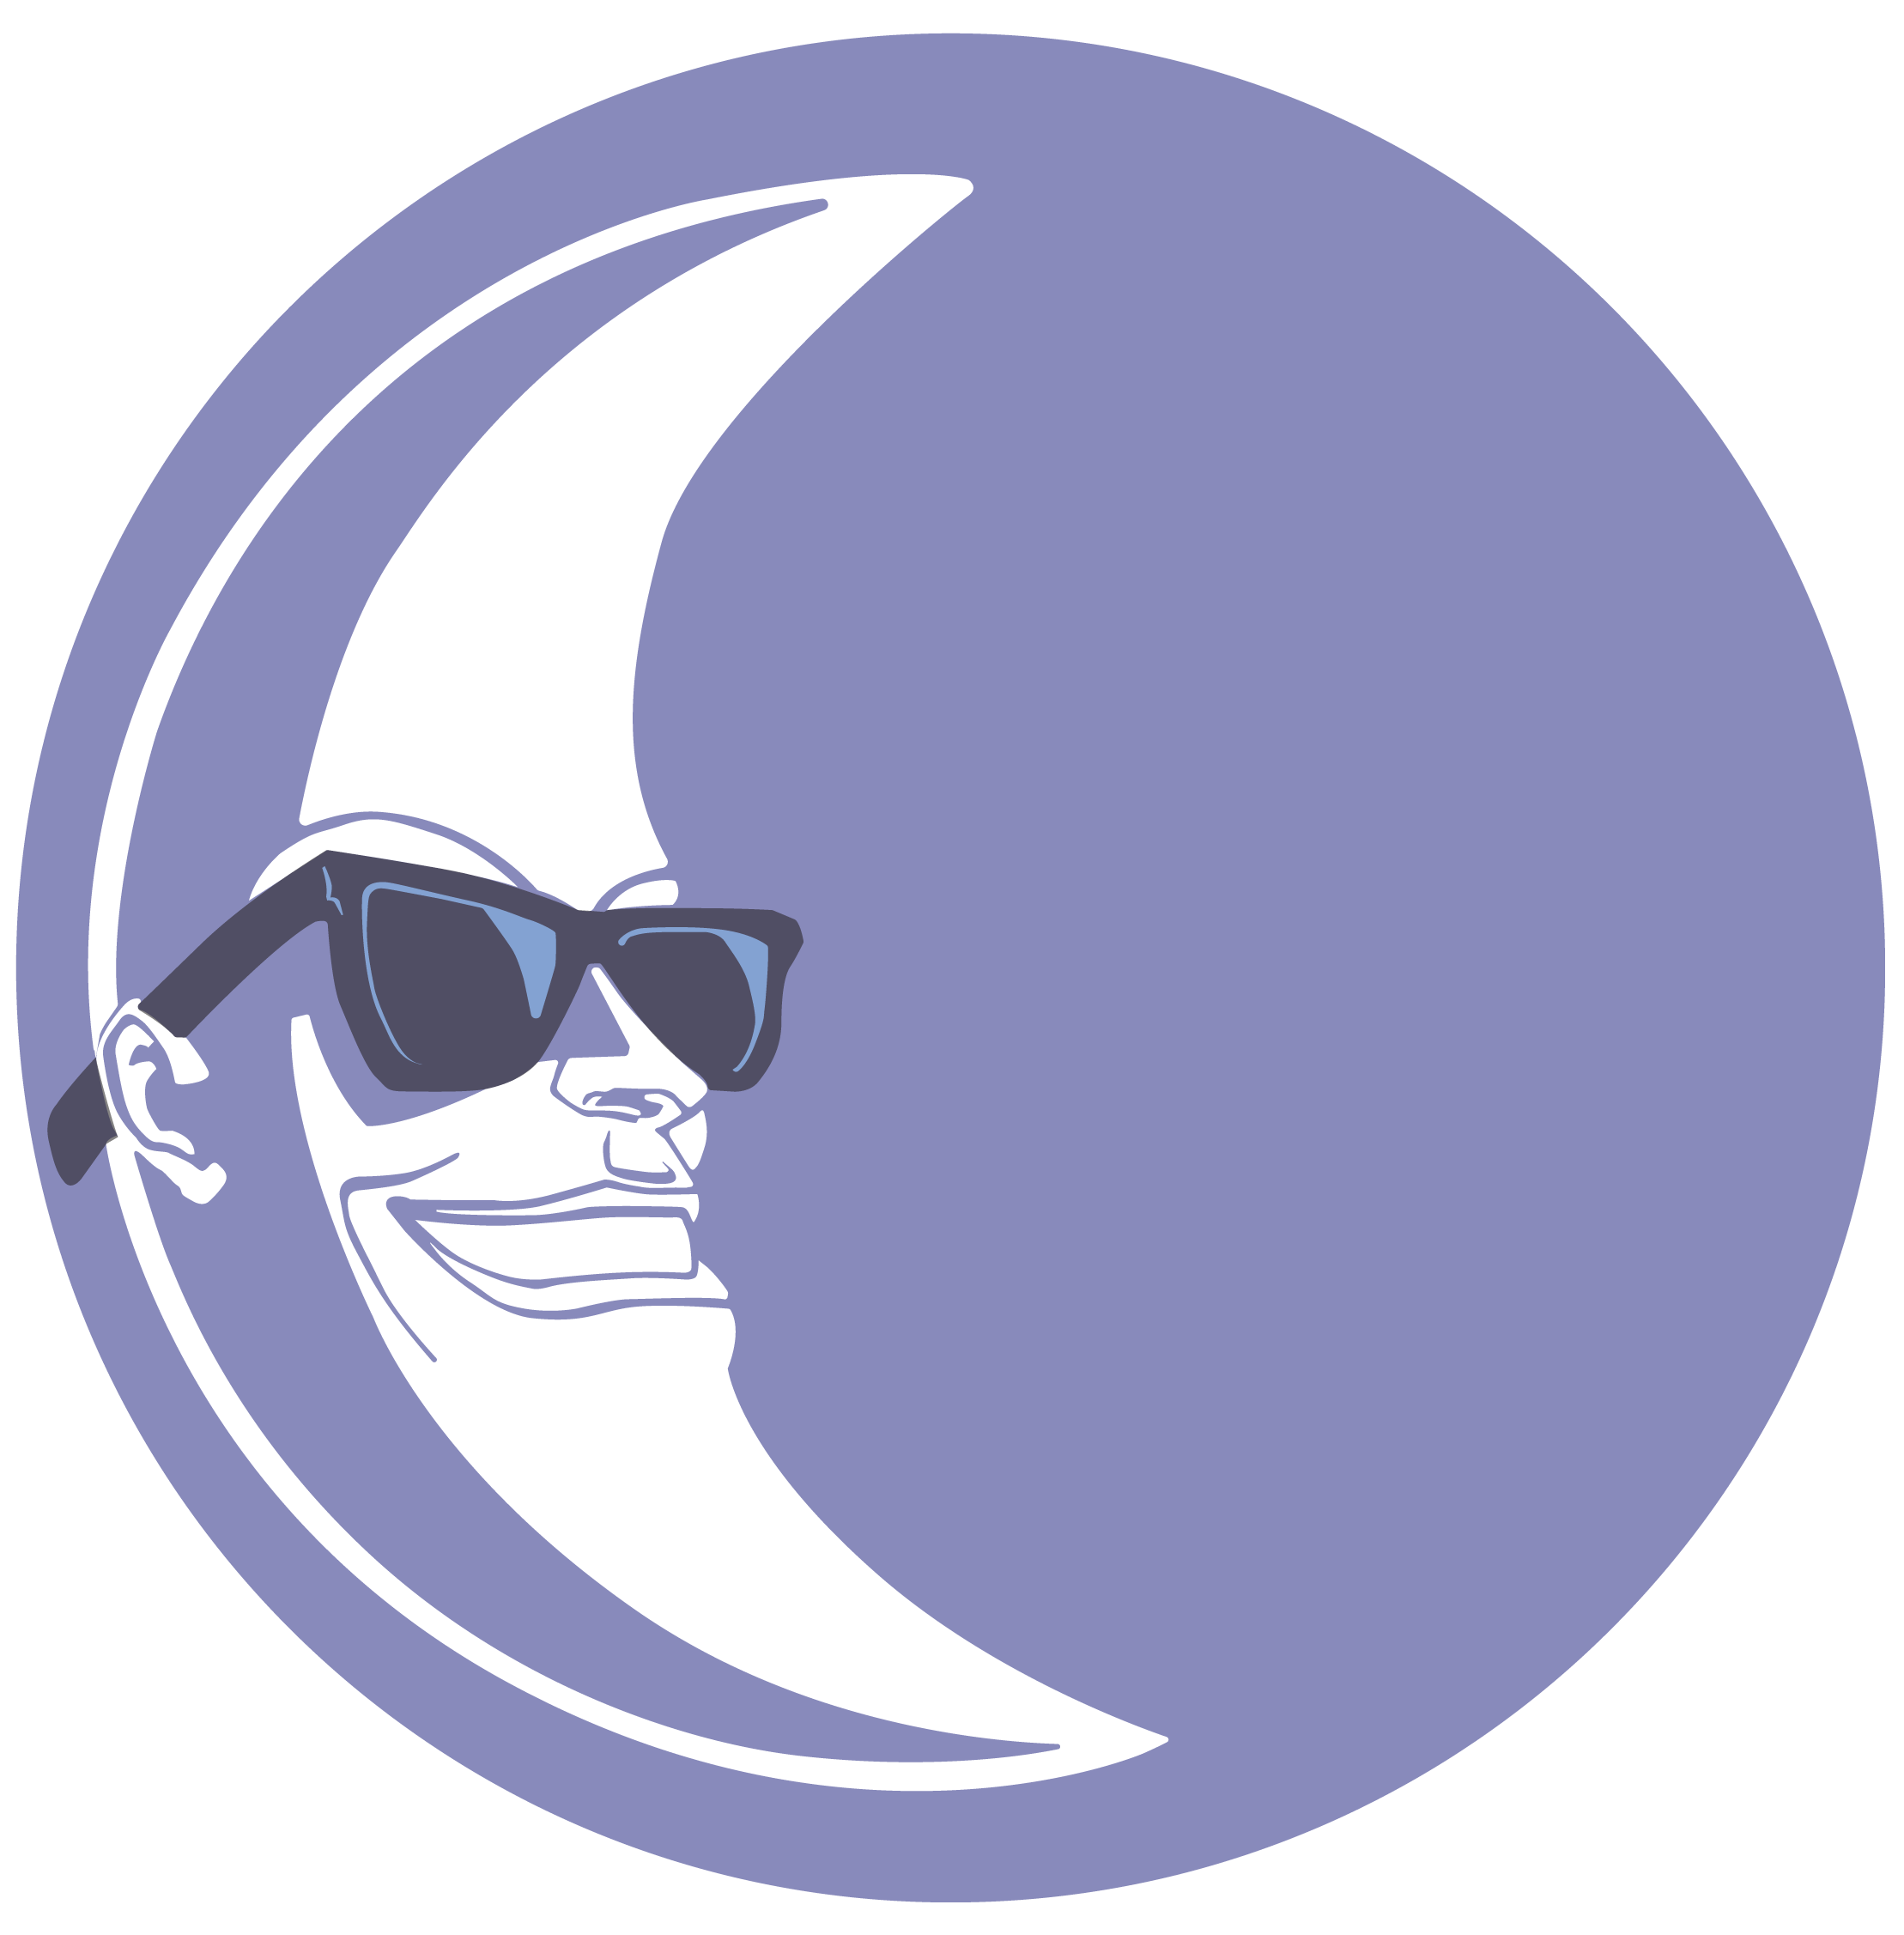 Moon man png. Moonman know your meme